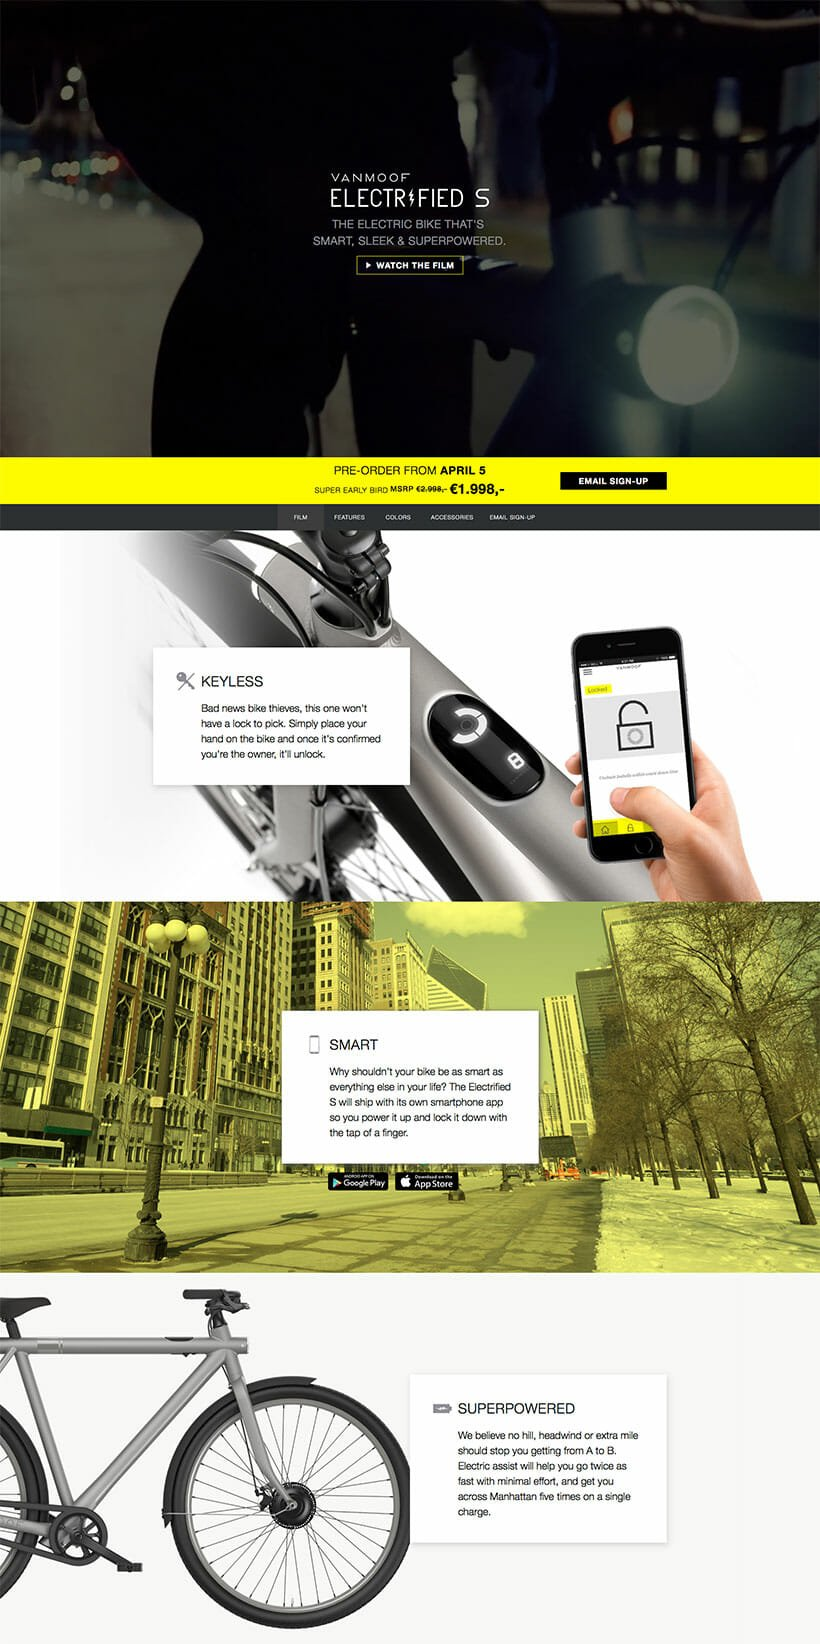 google-self-driving-bike-vanmoof-electrified